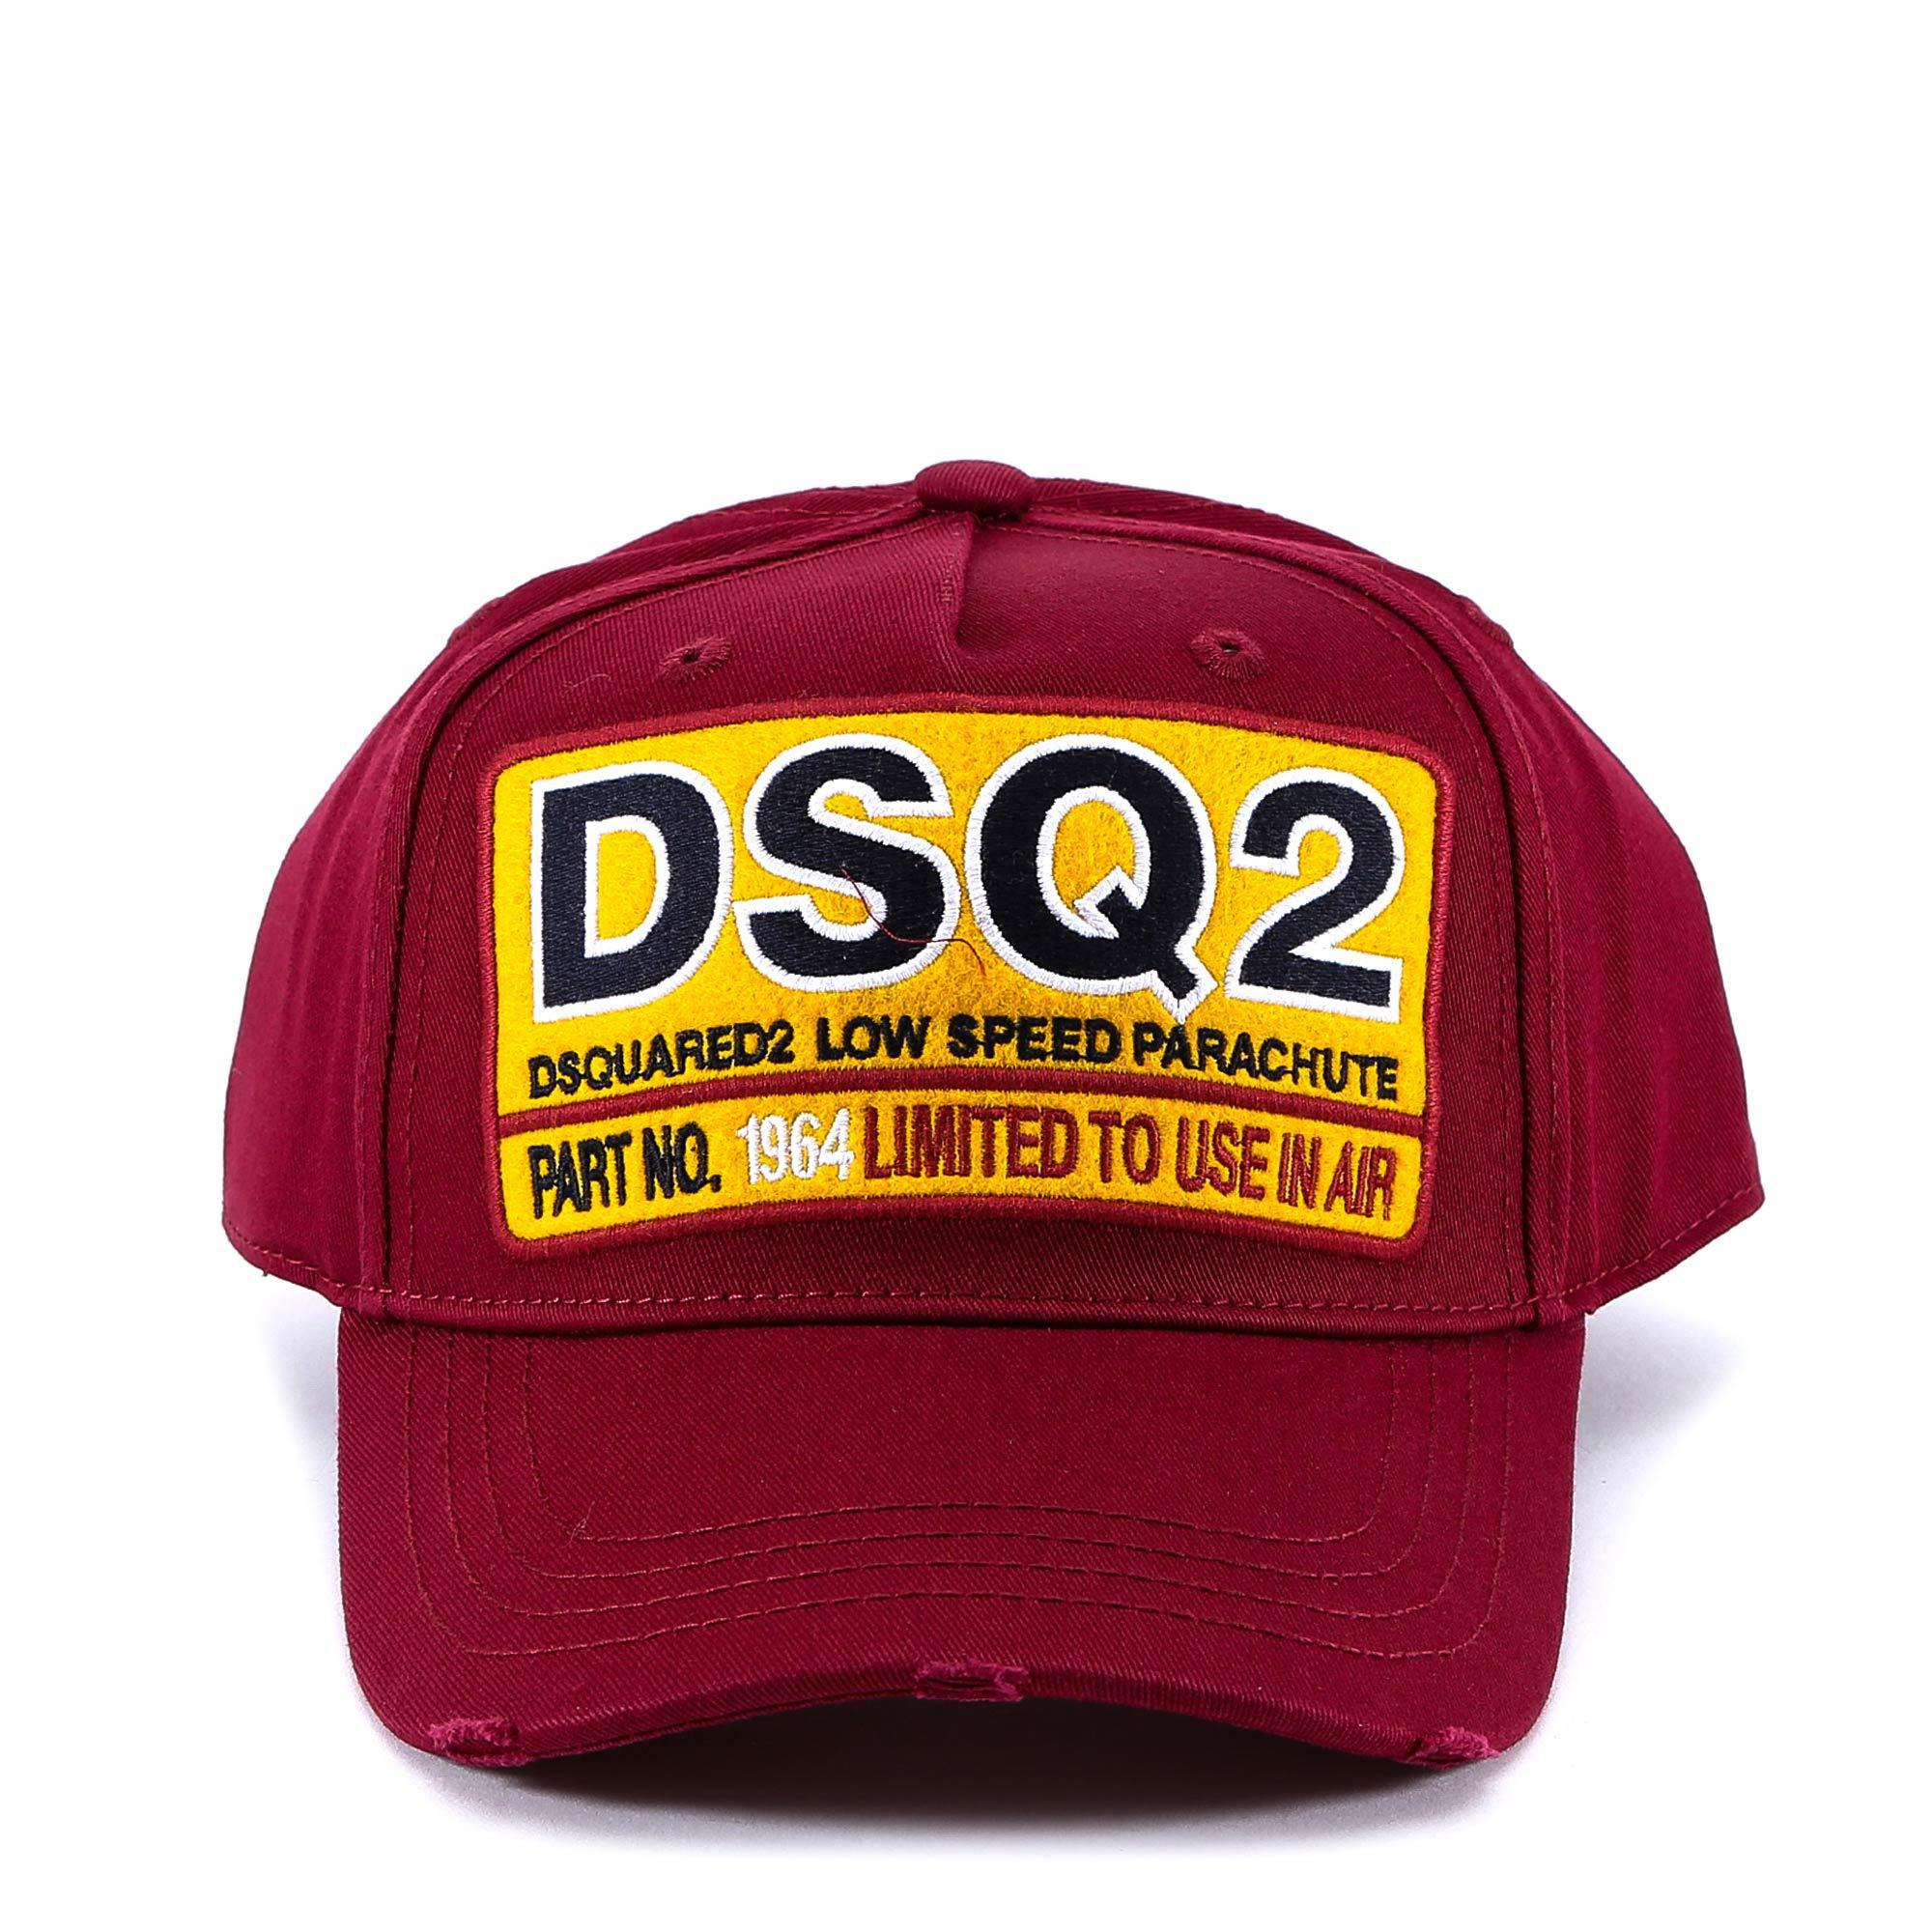 Lyst - Dsquared² Dsq2 Patch Baseball Cap in Red for Men a530edd21a23